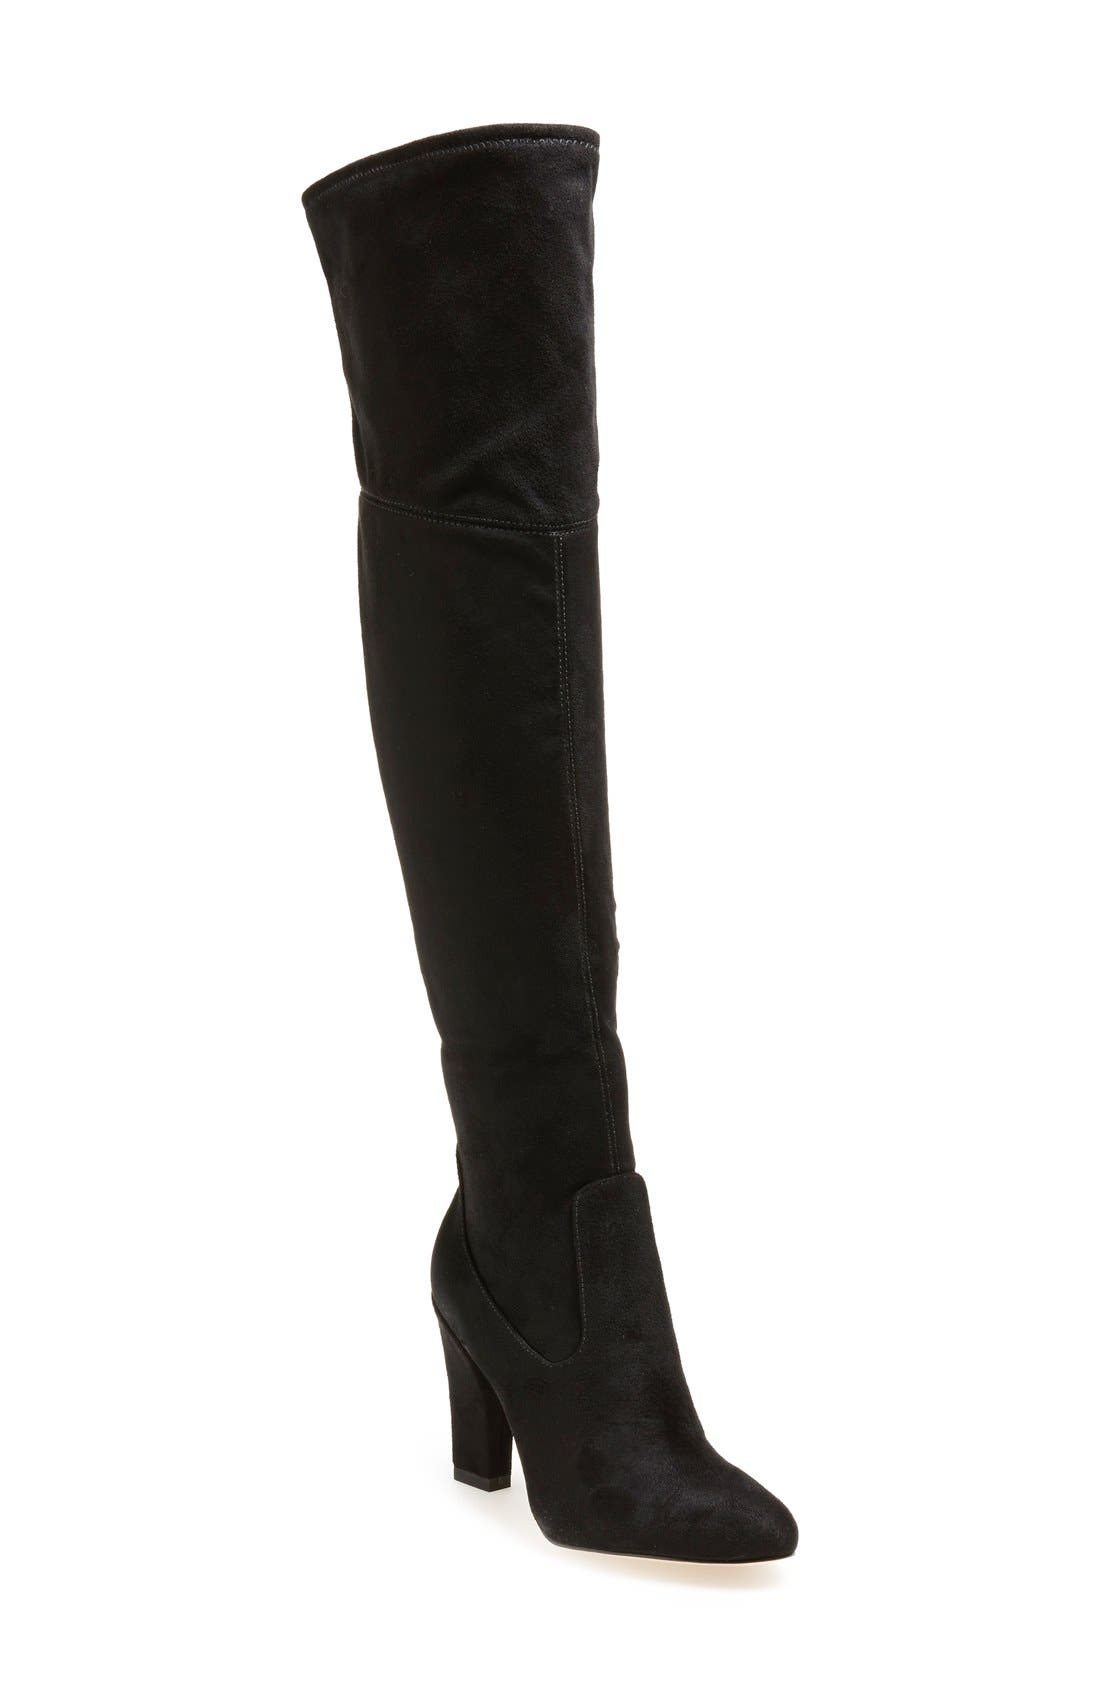 Alternate Image 1 Selected - Ivanka Trump 'Sarena' Over the Knee Stretch Boot (Women)